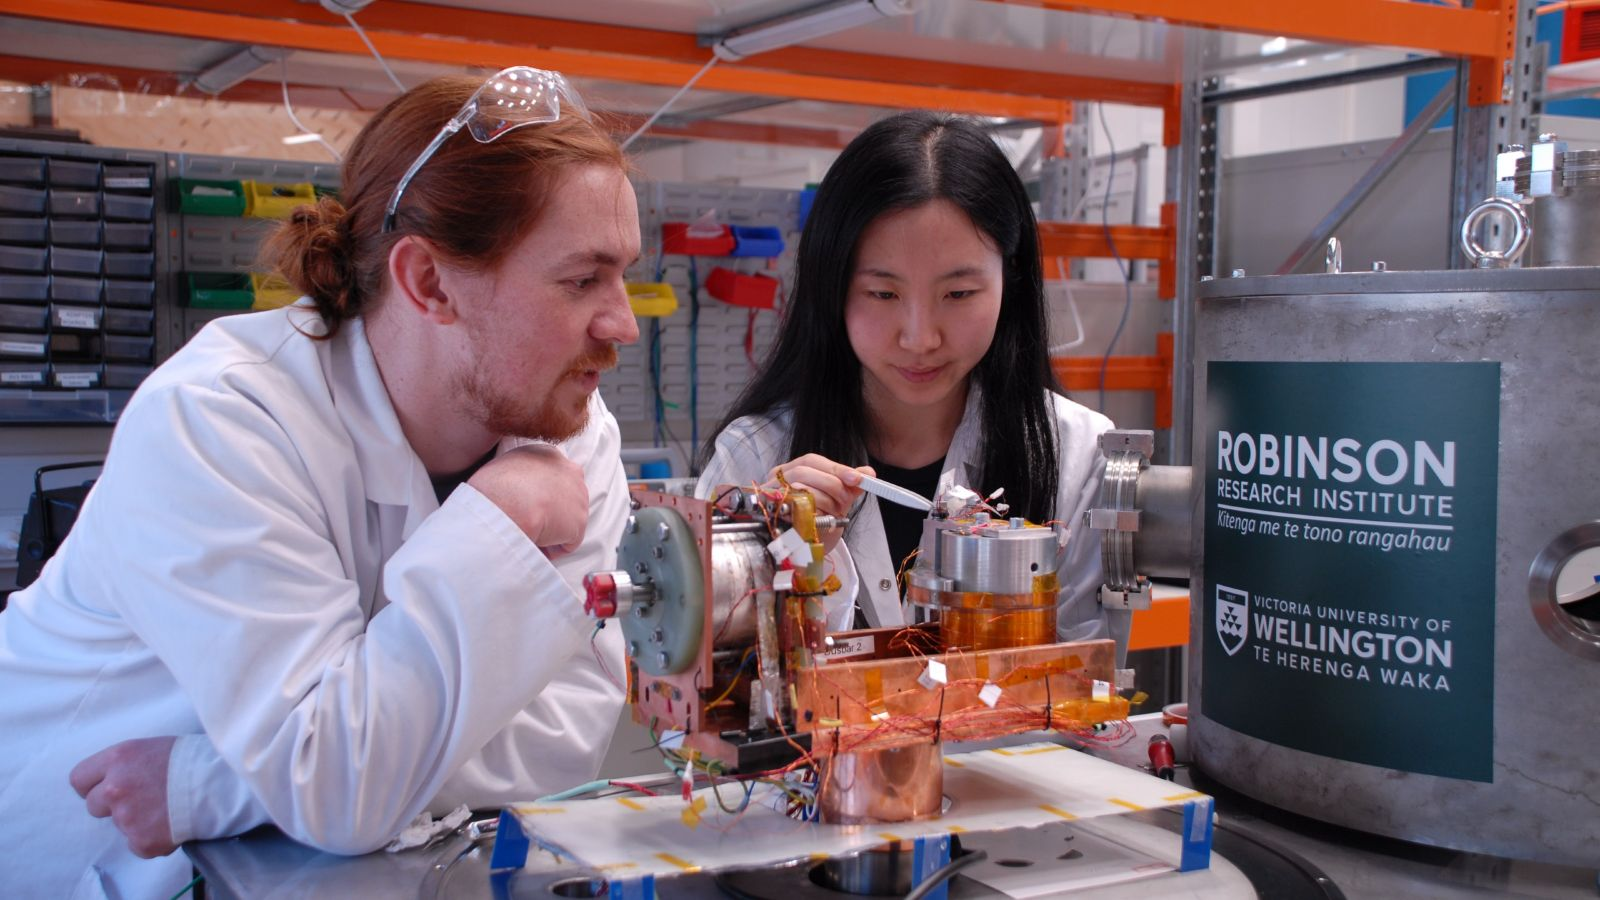 Two students in lab coats, working together on an electric system in Robinson Research Institute/